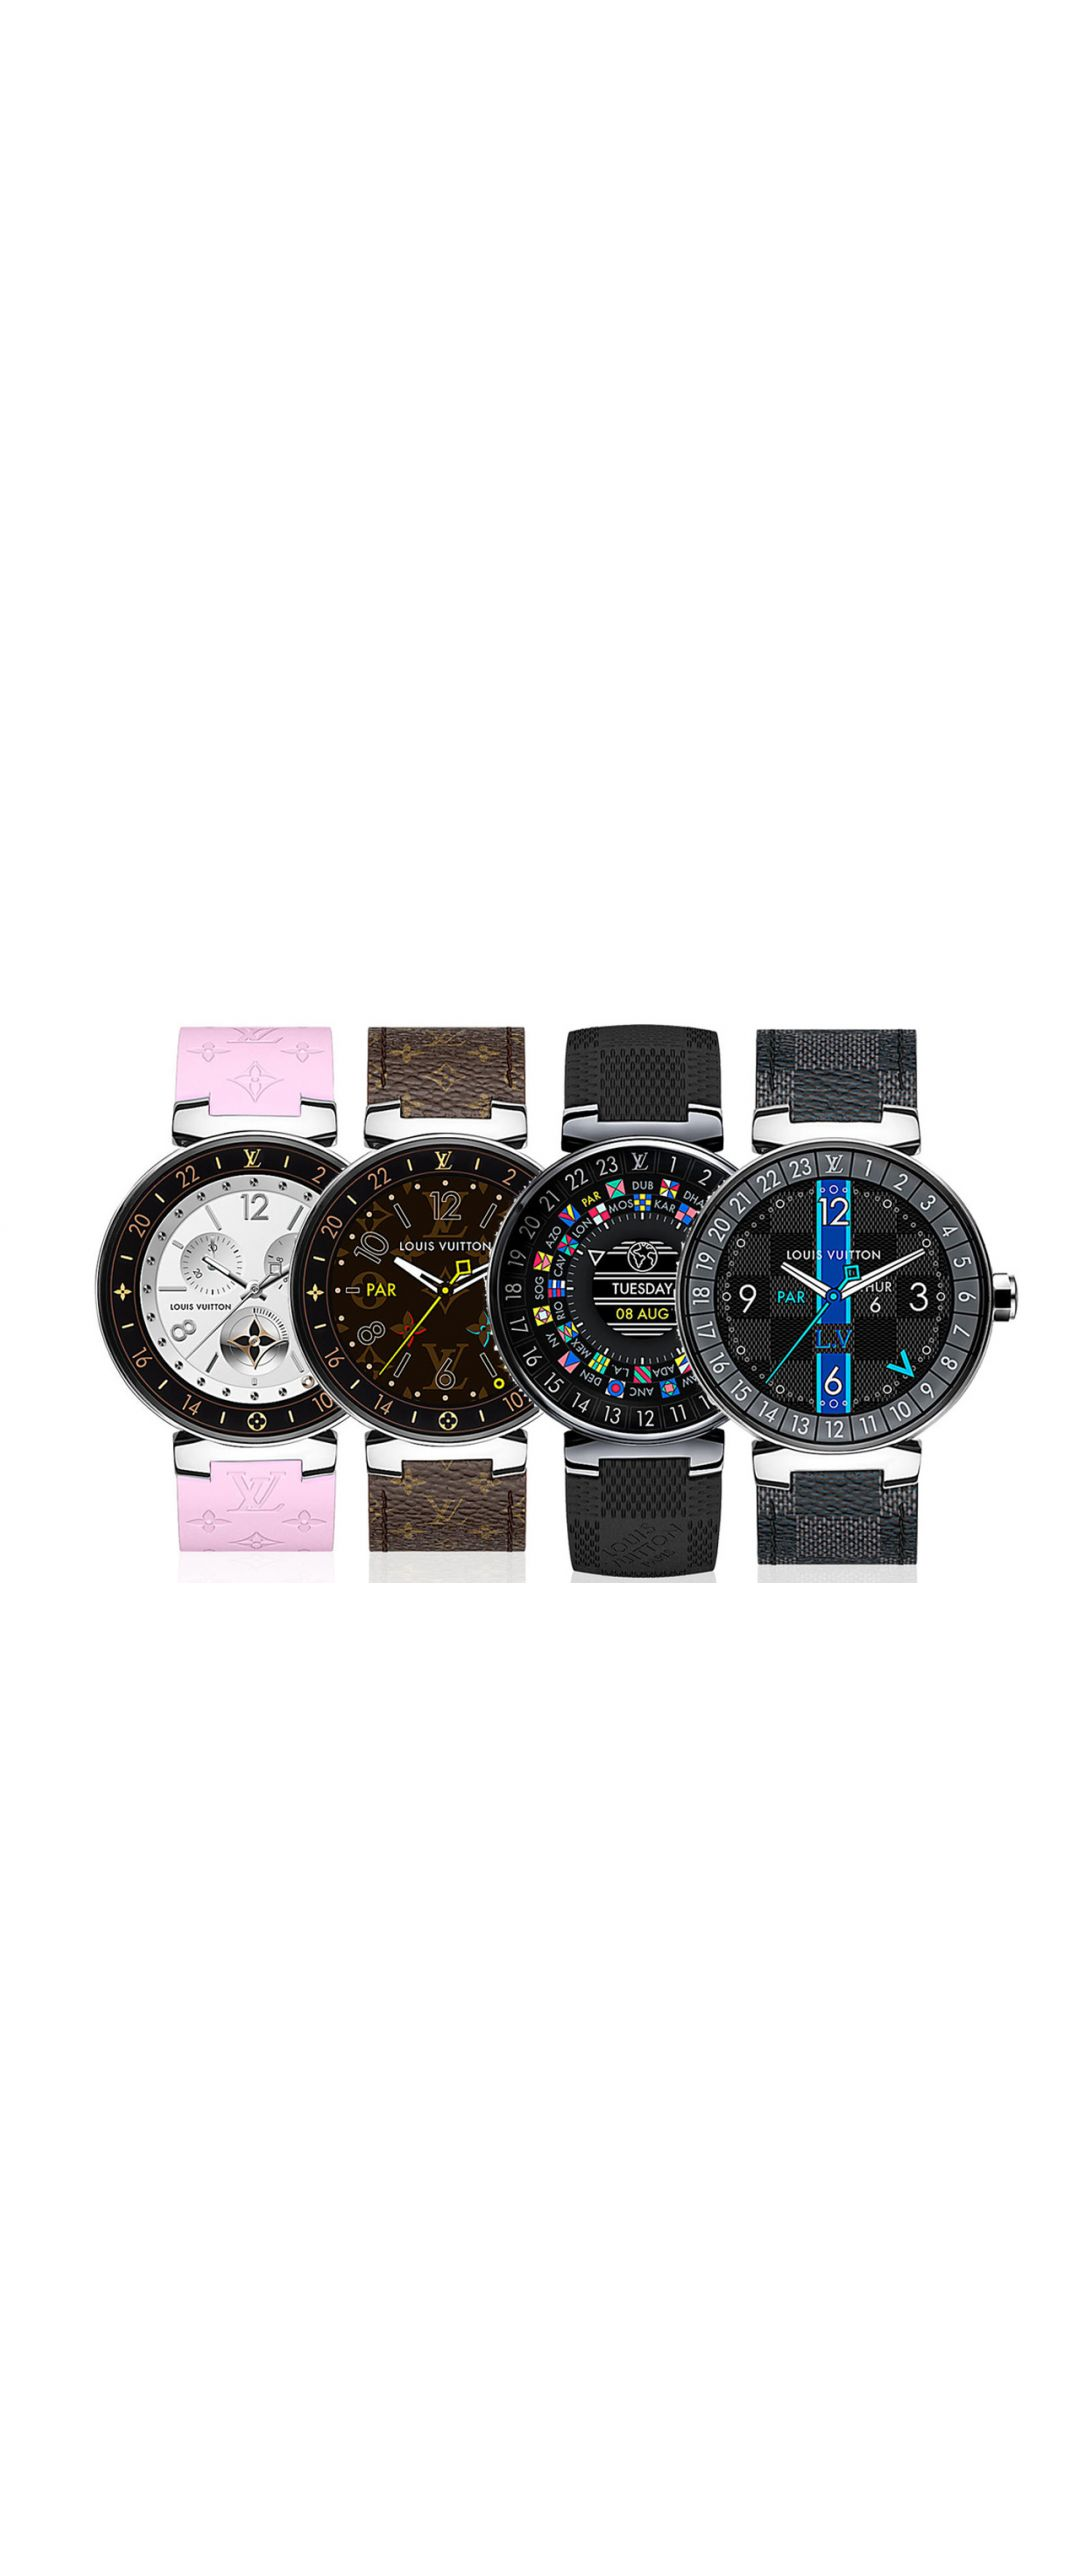 Louis Vuitton lanza un smartwatch Android que cuesta una fortuna